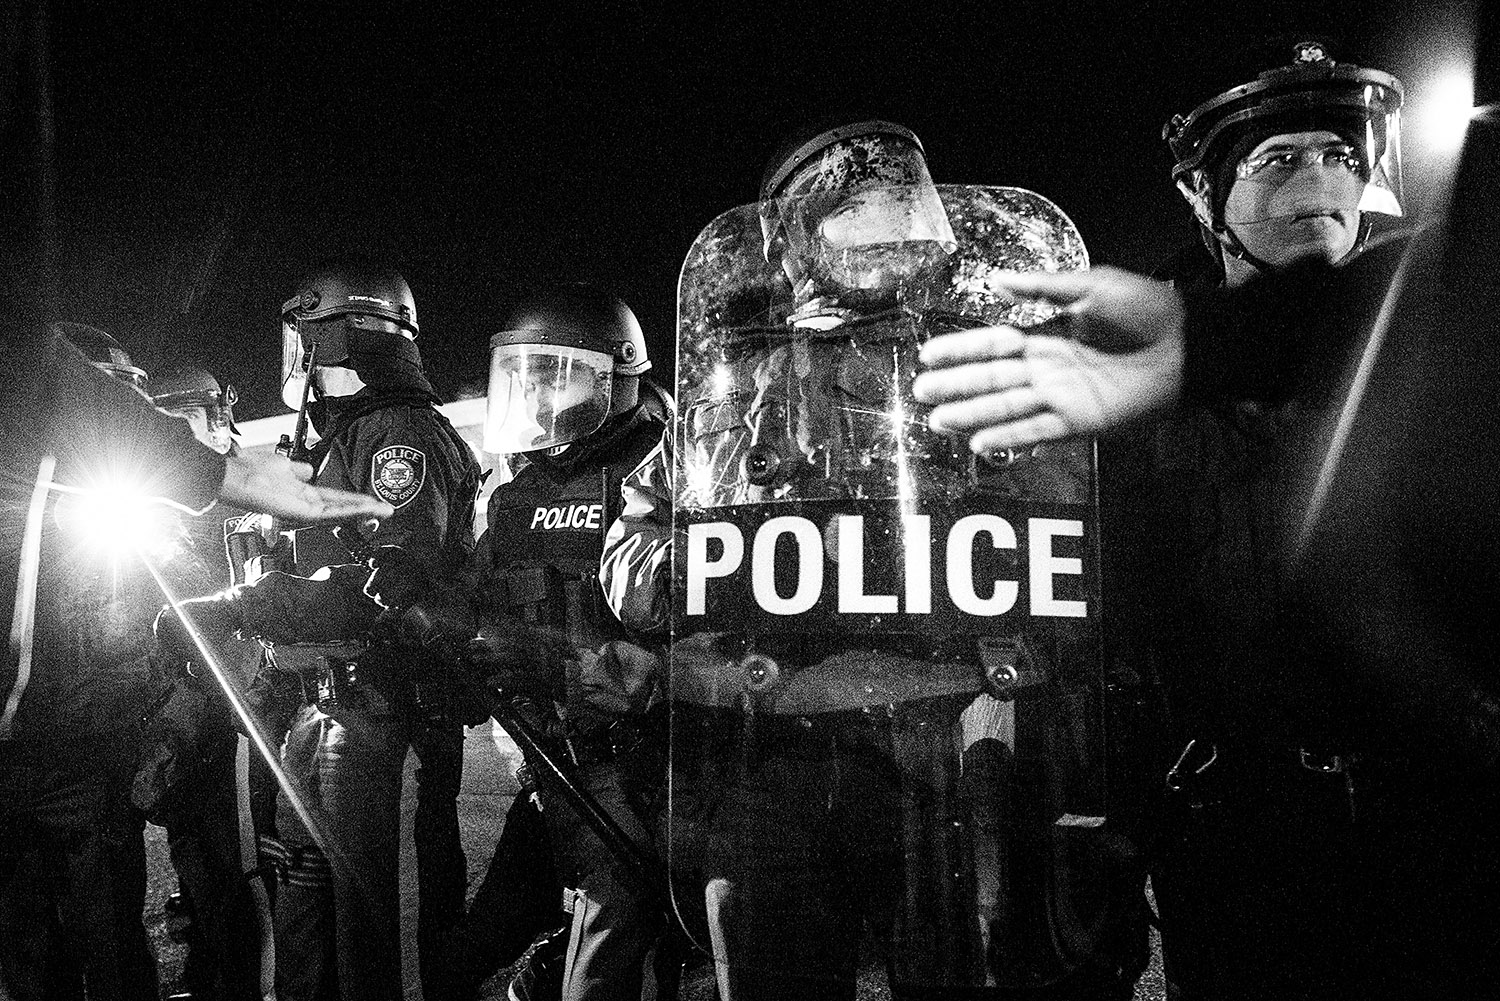 FERGUSON, MO - NOVEMBER 25: Protesters and police interact, sometimes violently, in front of the Ferguson police department after a night or riots and destruction following the grand jury's decision not to indict police officer Darren Wilson in the death of teen Michael Brown. The Ferguson police were criticized for their heavy handed and violent tactics following the protests and riots that were sparked by the killing of unarmed black teen Michael Brown by white police officer Darren Wilson in August 2014. (Photo by Benjamin Lowy/Reportage by Getty Images)